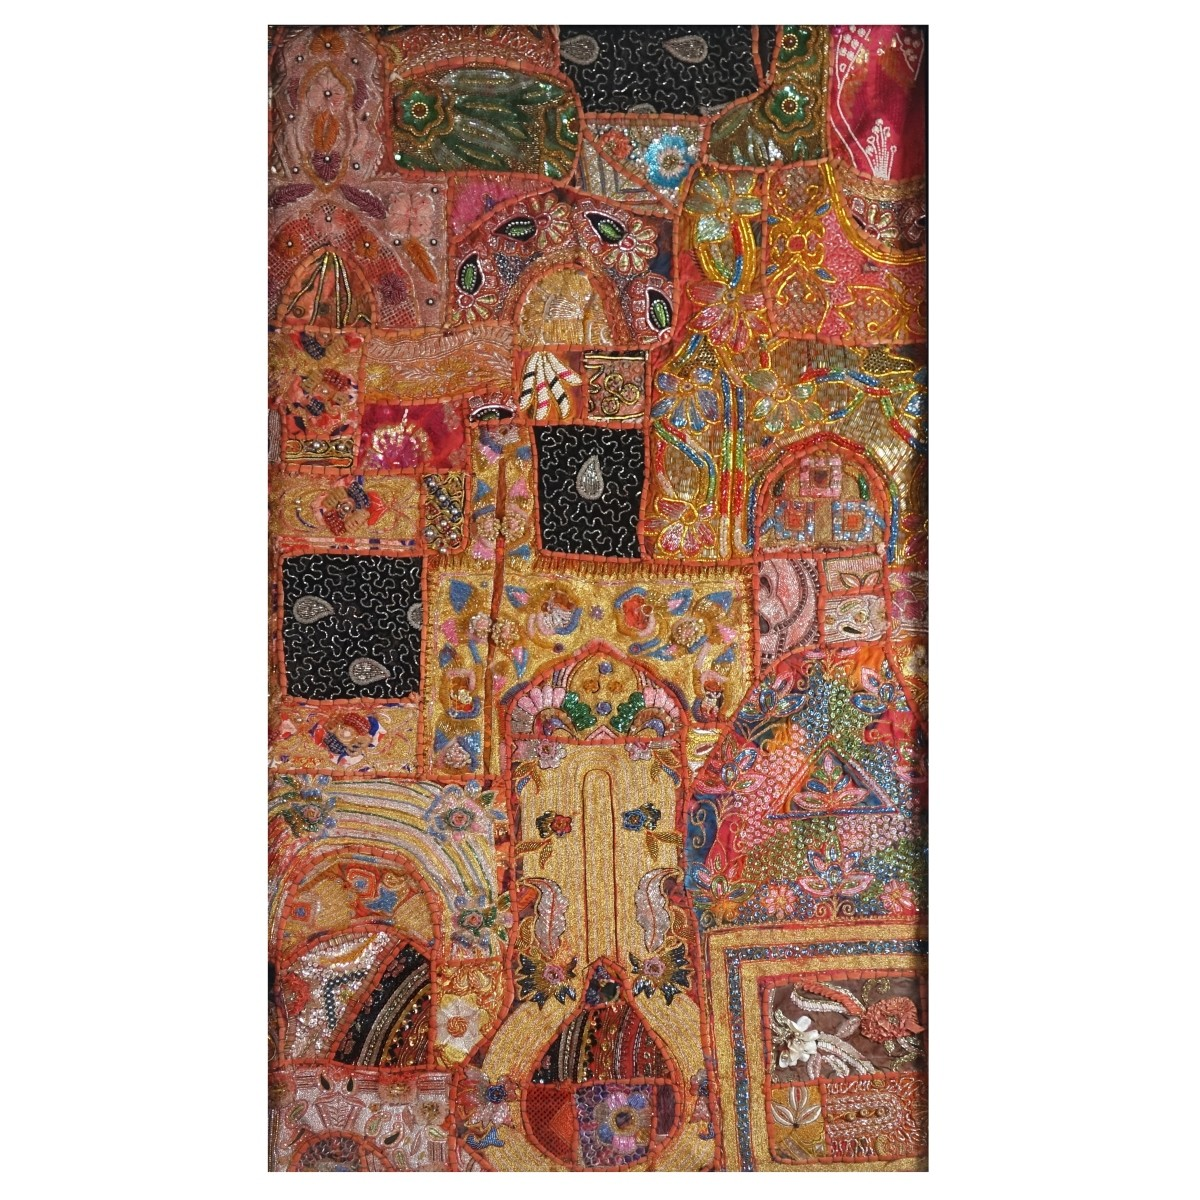 Large Indian Hand Embroidered Patchwork Tapestry